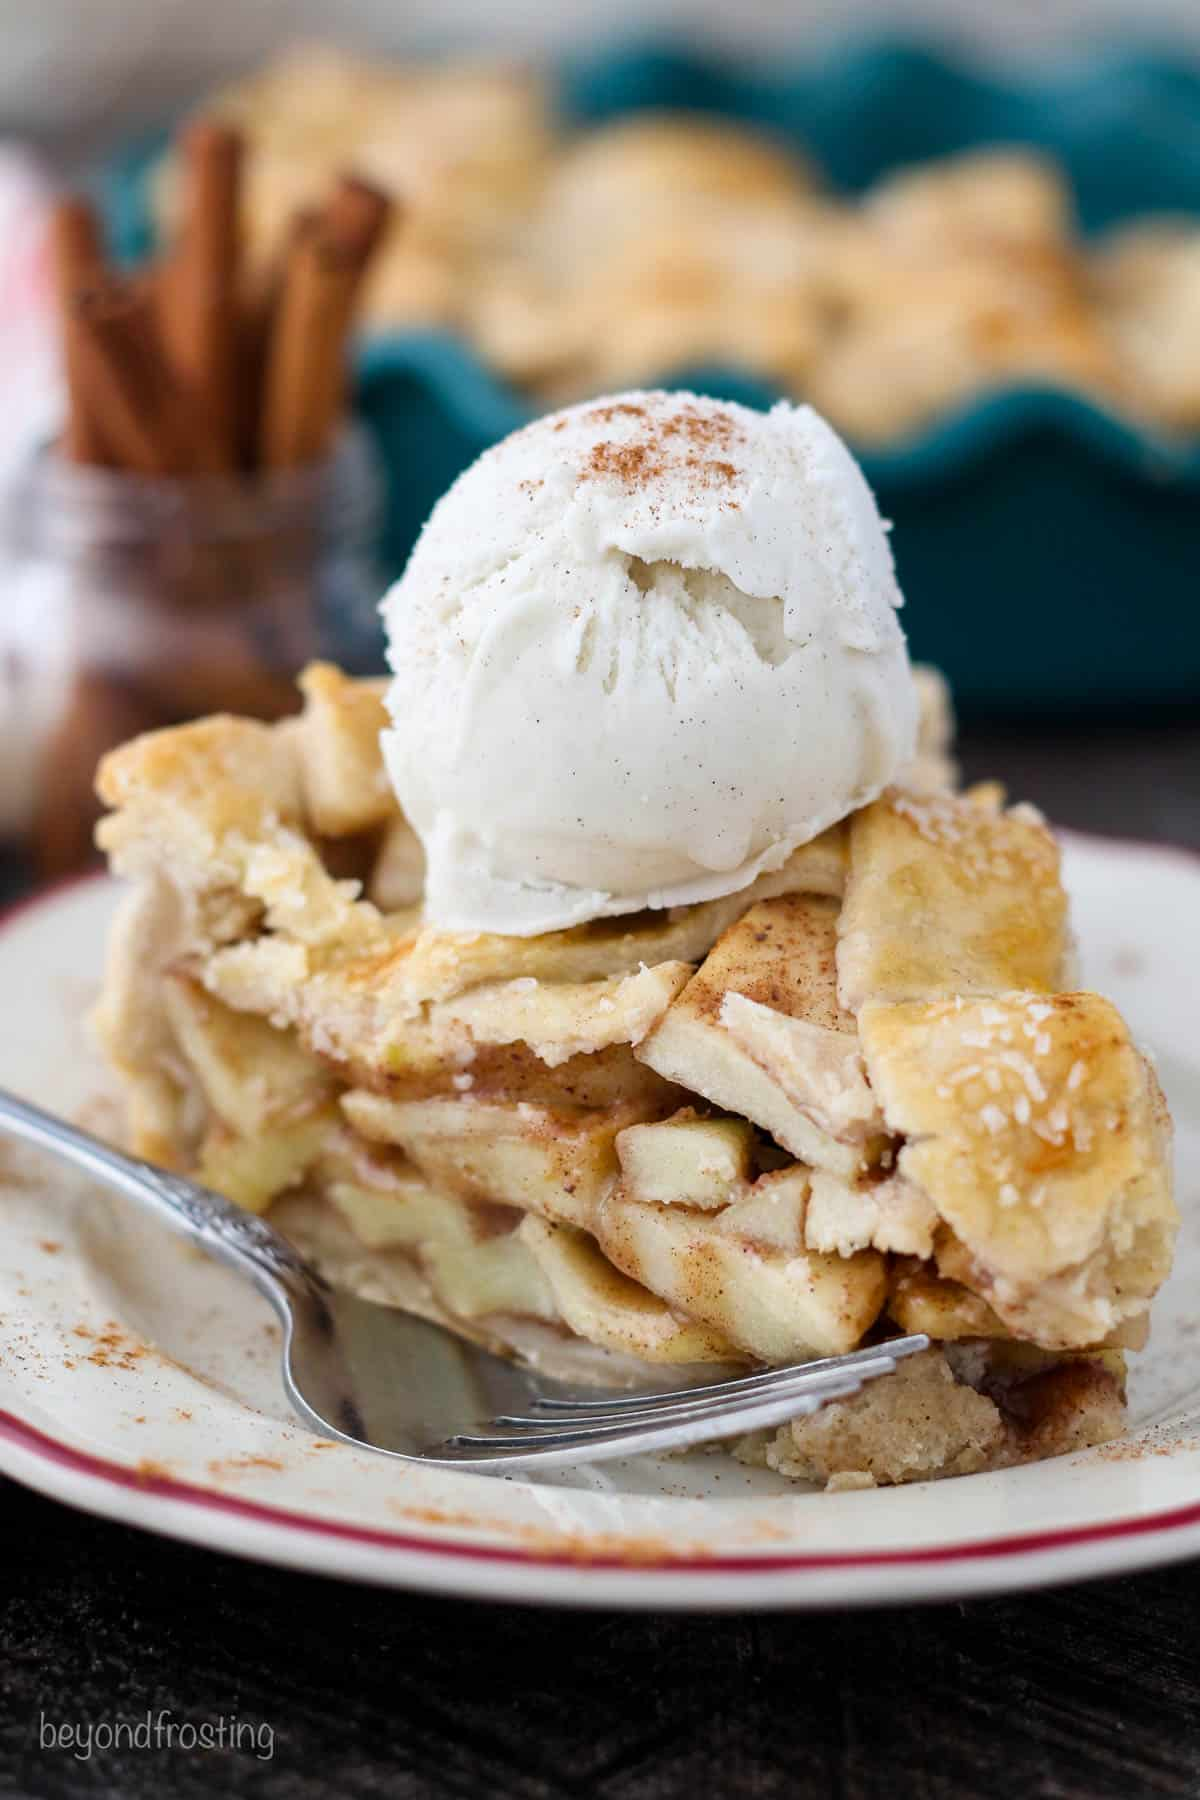 A close up a big slice of apple pie with ice cream and cinnamon on top